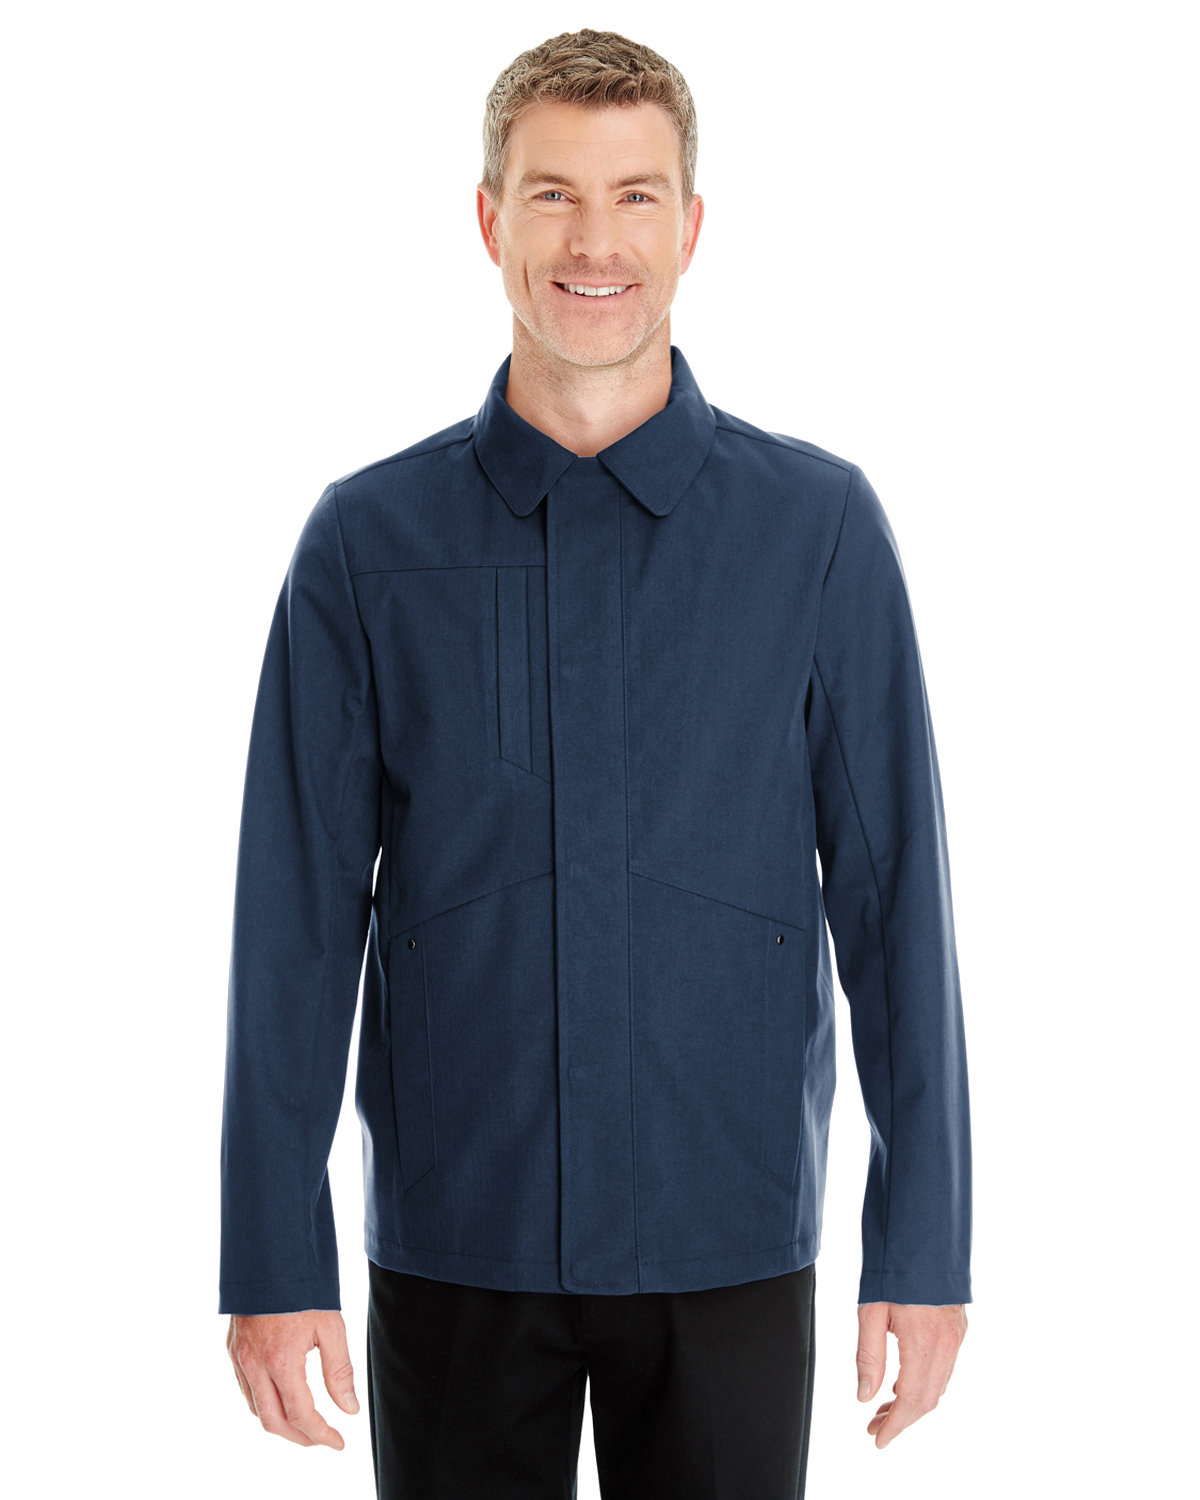 North End Men's Edge Soft Shell Jacket with Fold-Down Collar NAVY